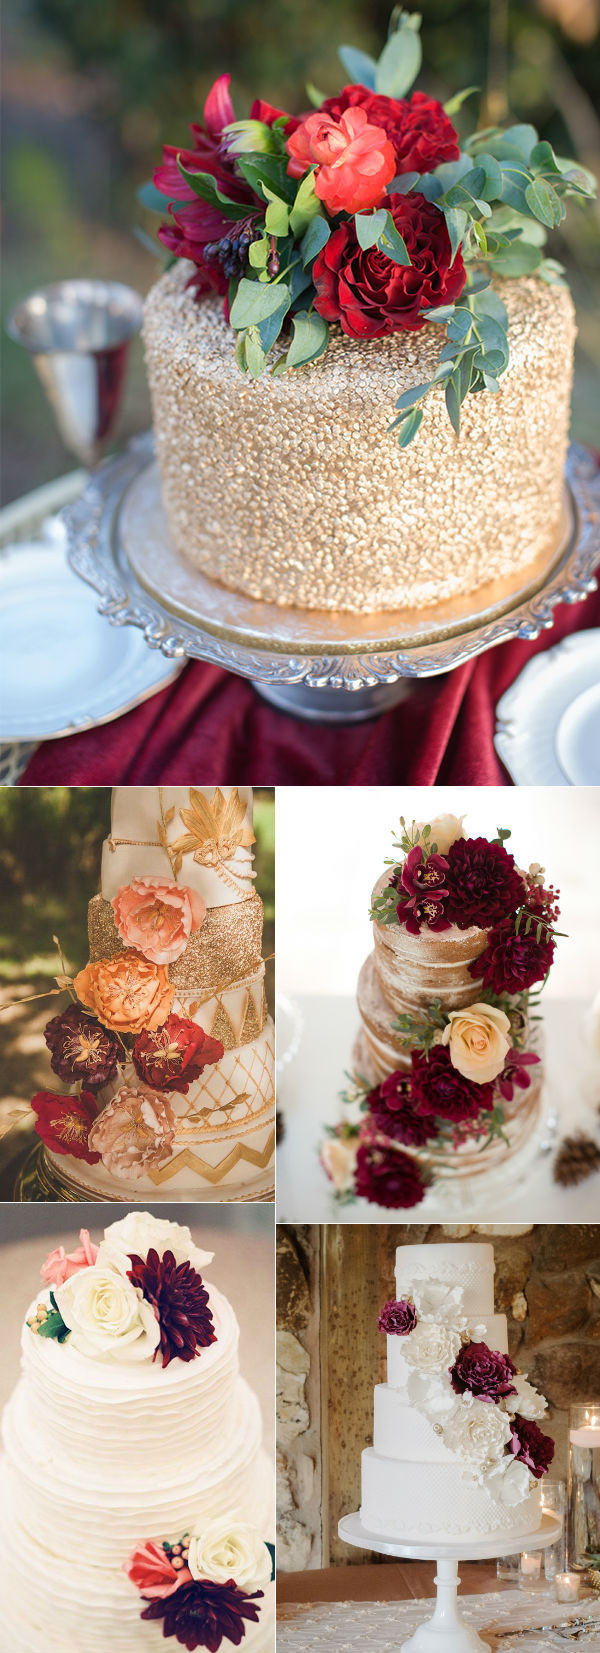 Fall Wedding Cakes Pictures  32 Amazing Wedding Cakes Perfect For Fall